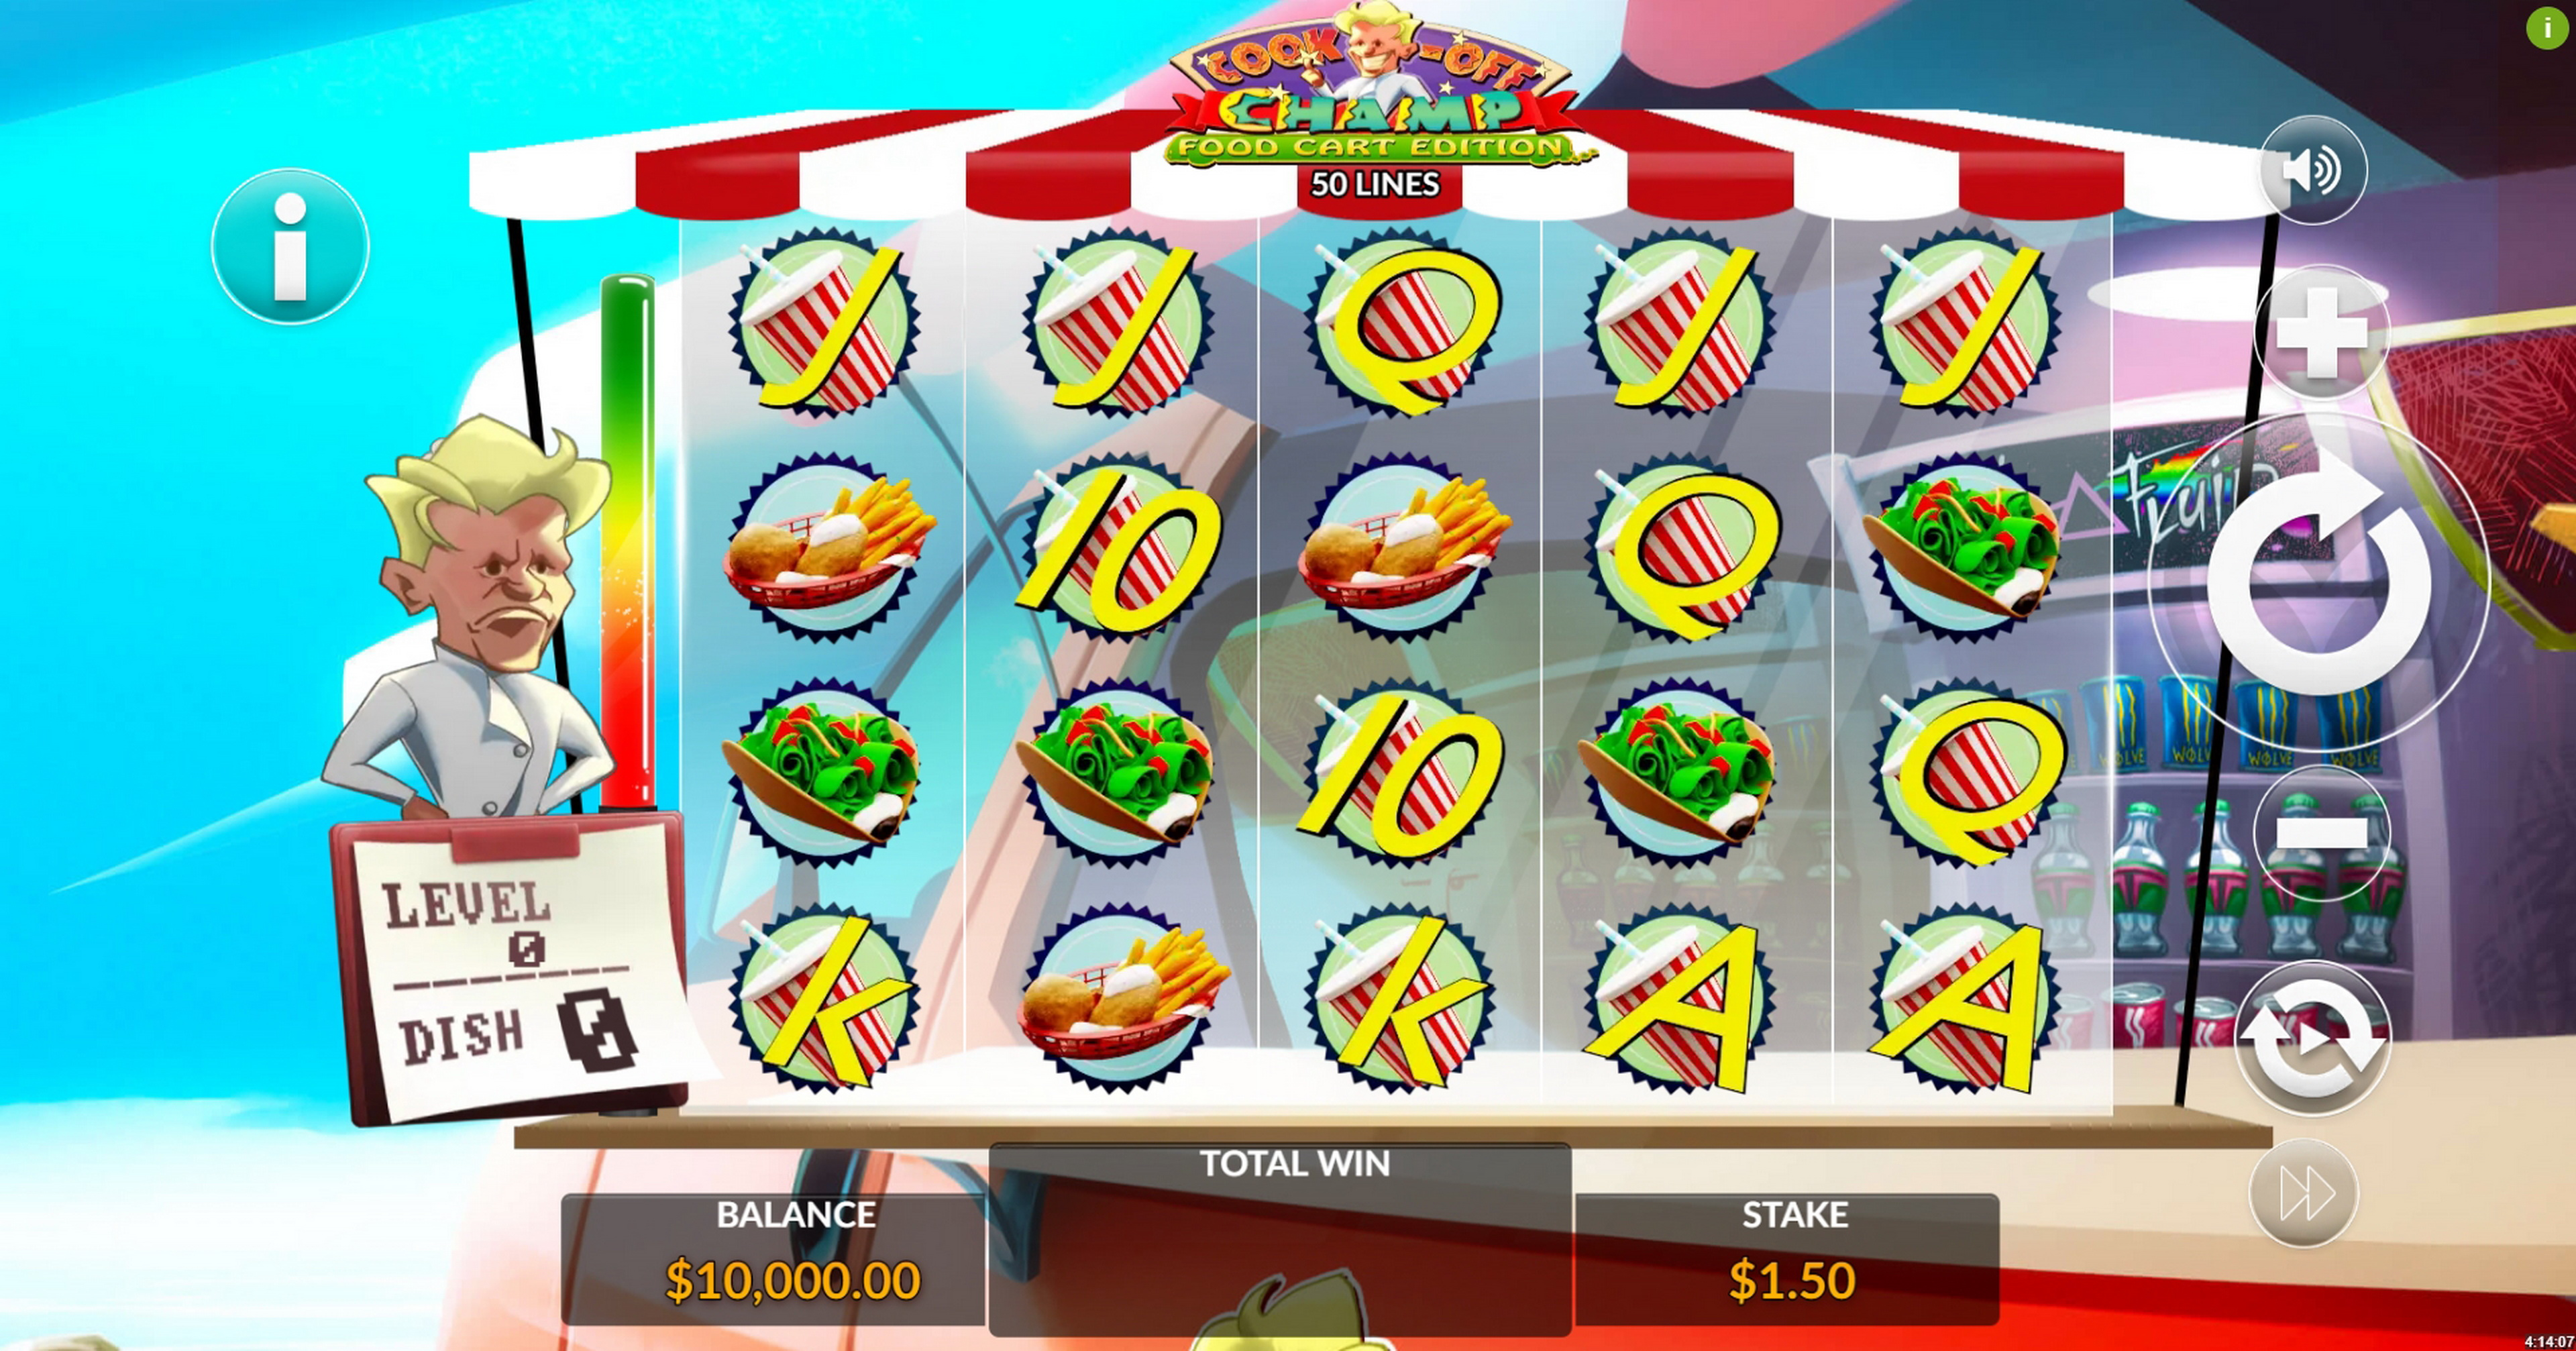 Reels in Cook-Off Champ Slot Game by Maverick